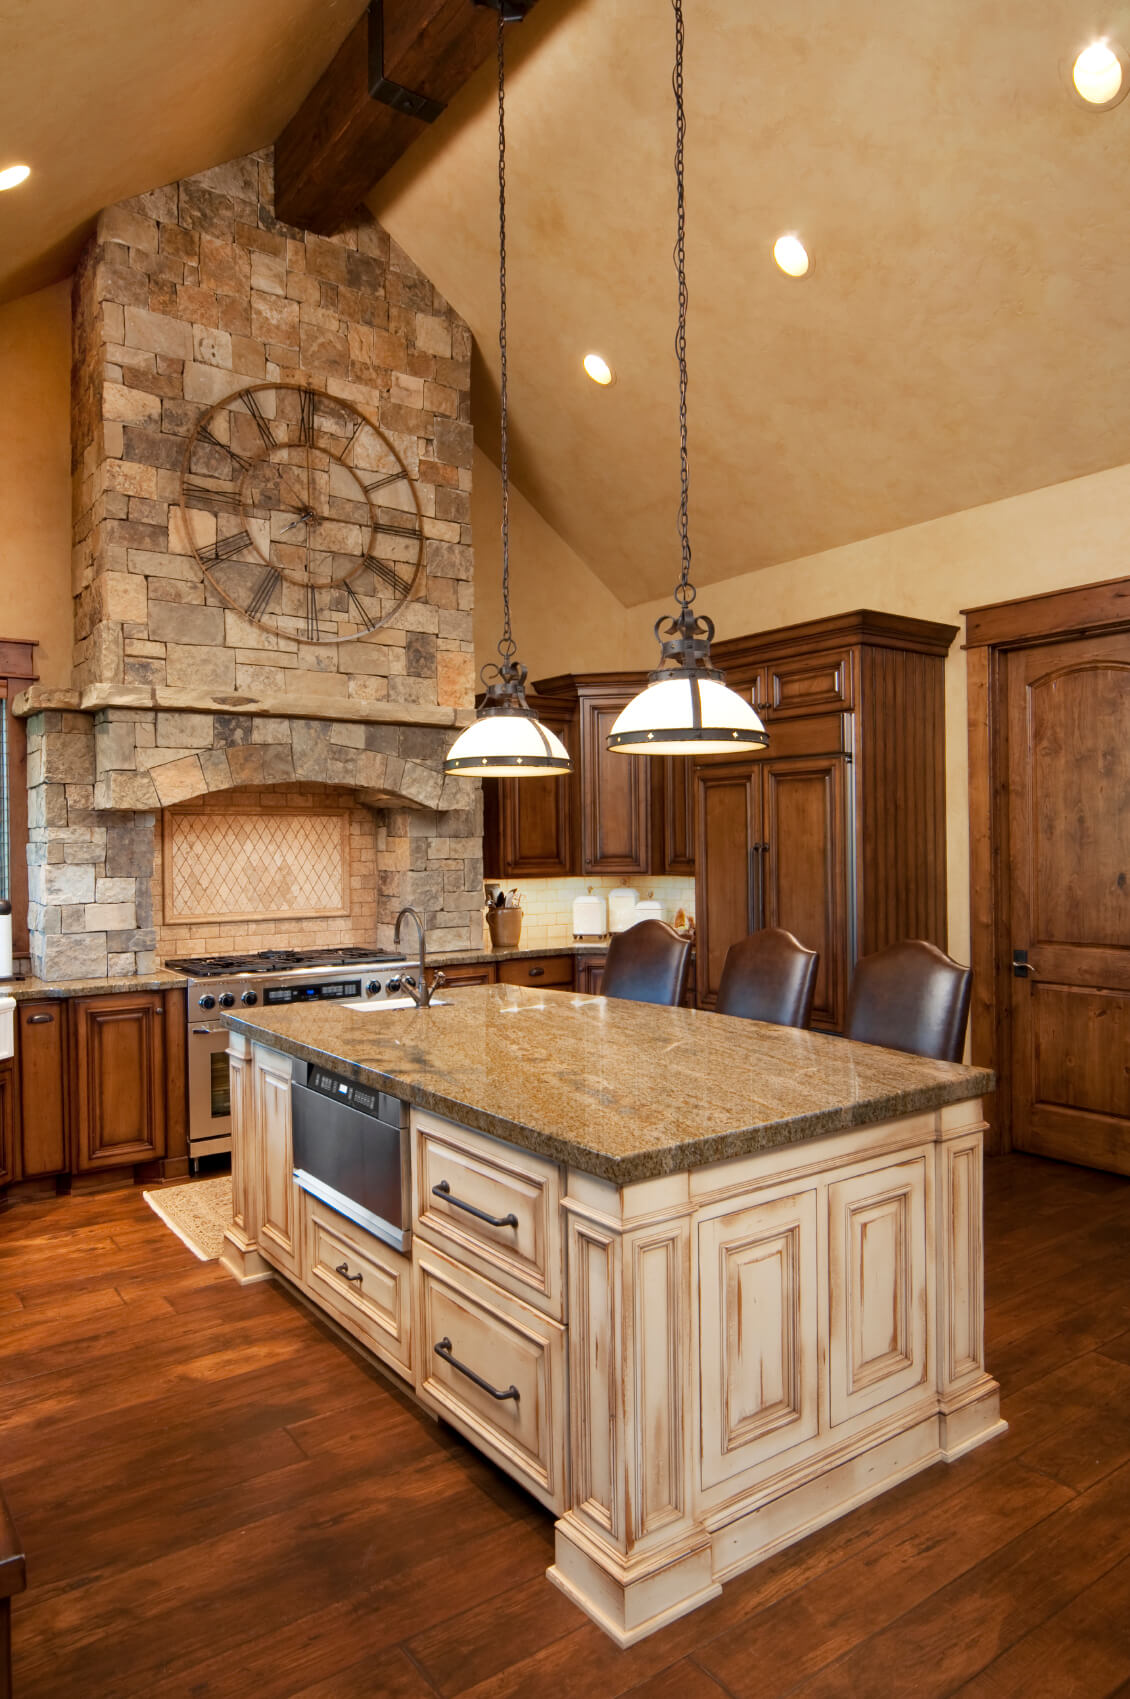 Rich Natural Wood Kitchen Holds This Large Contrasting Light Island At Center